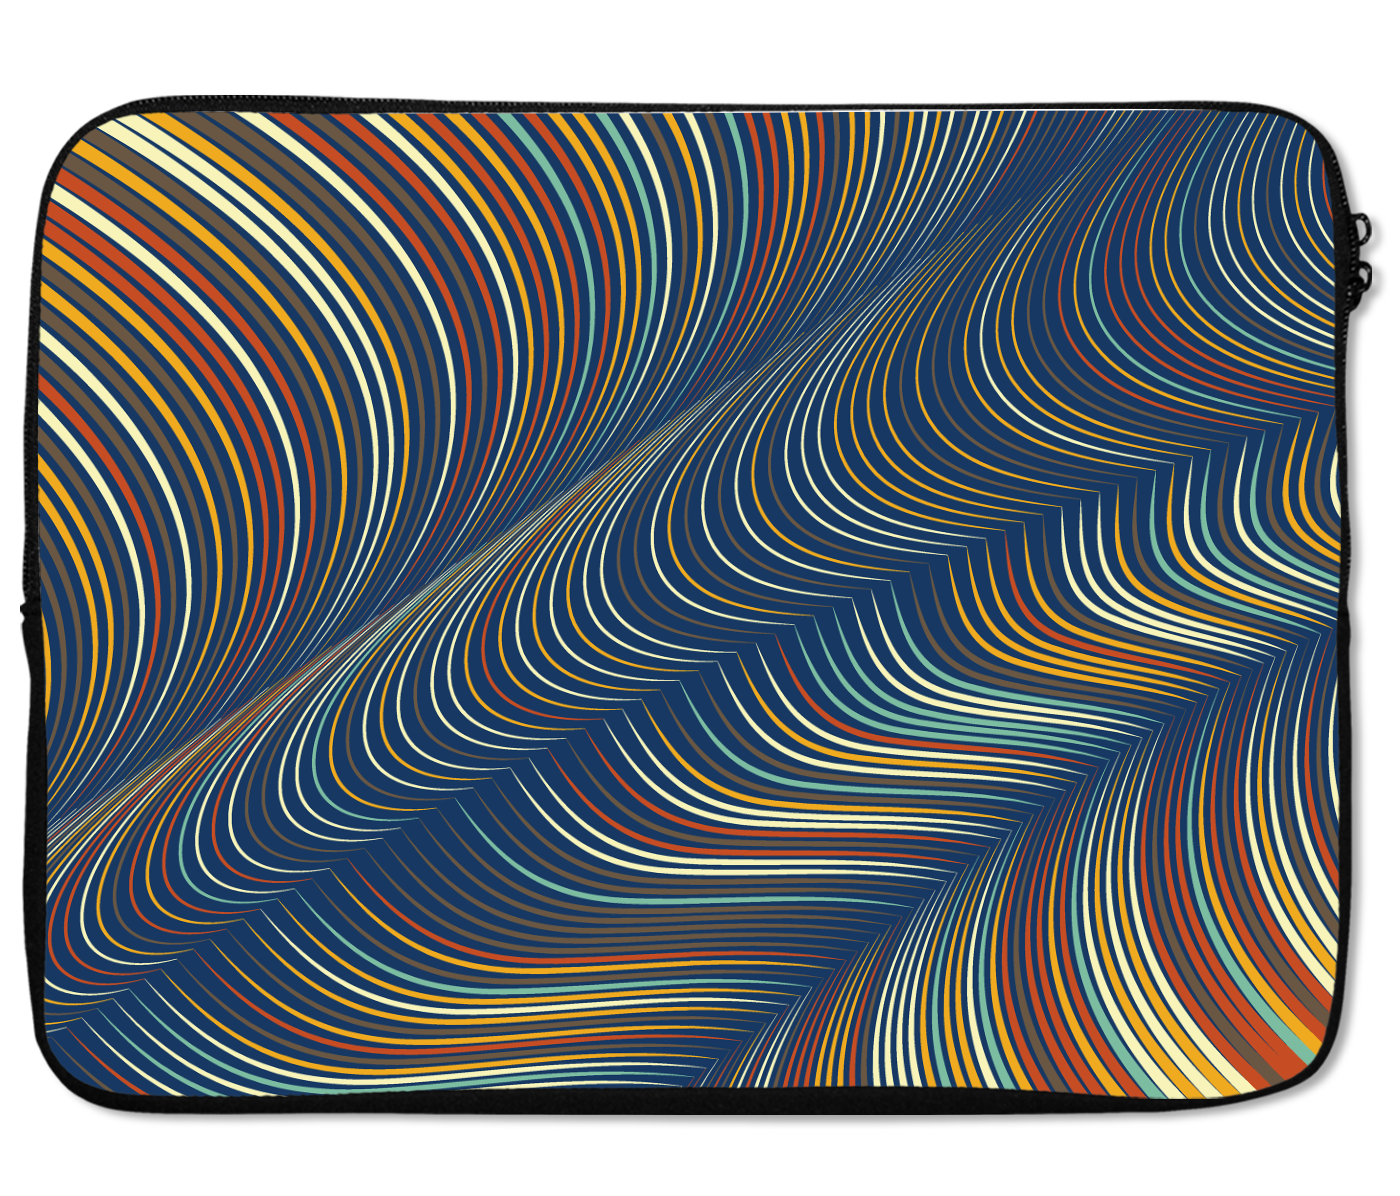 Laptops Tablet Sleeves Fabric Waves Pattern Premium Quality Neoprene Laptop Protection